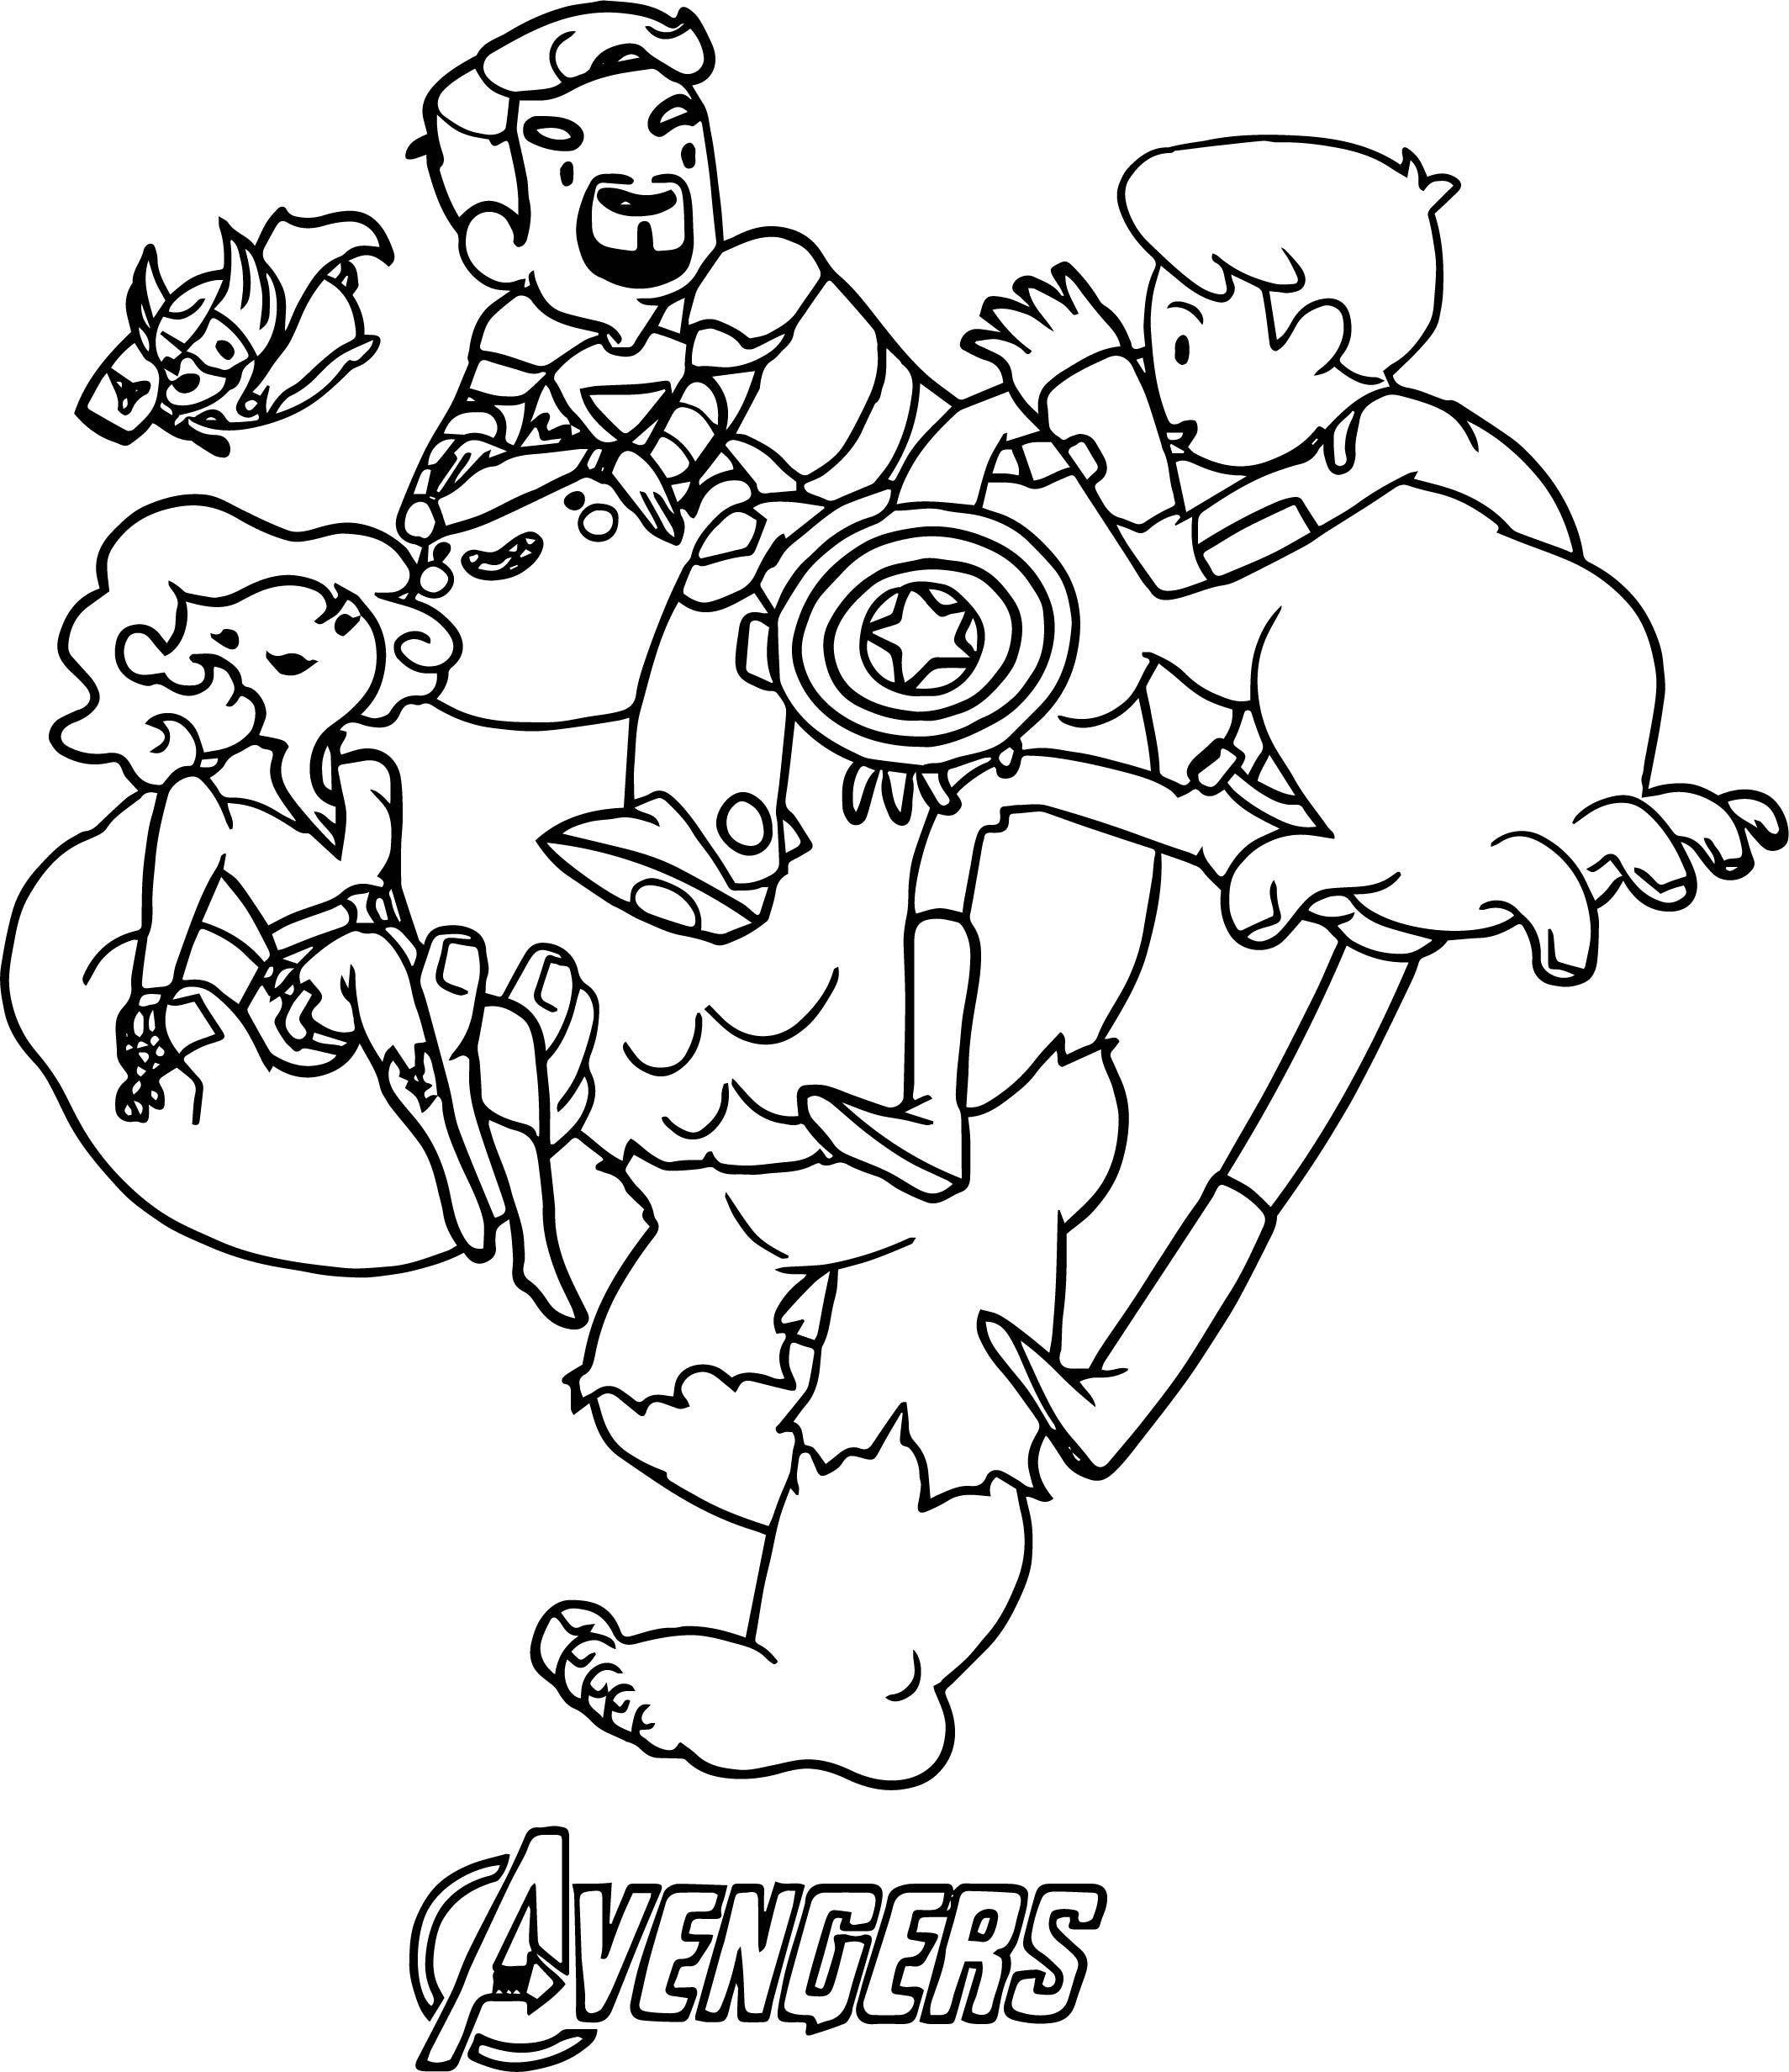 Avengers Coloring Page 06